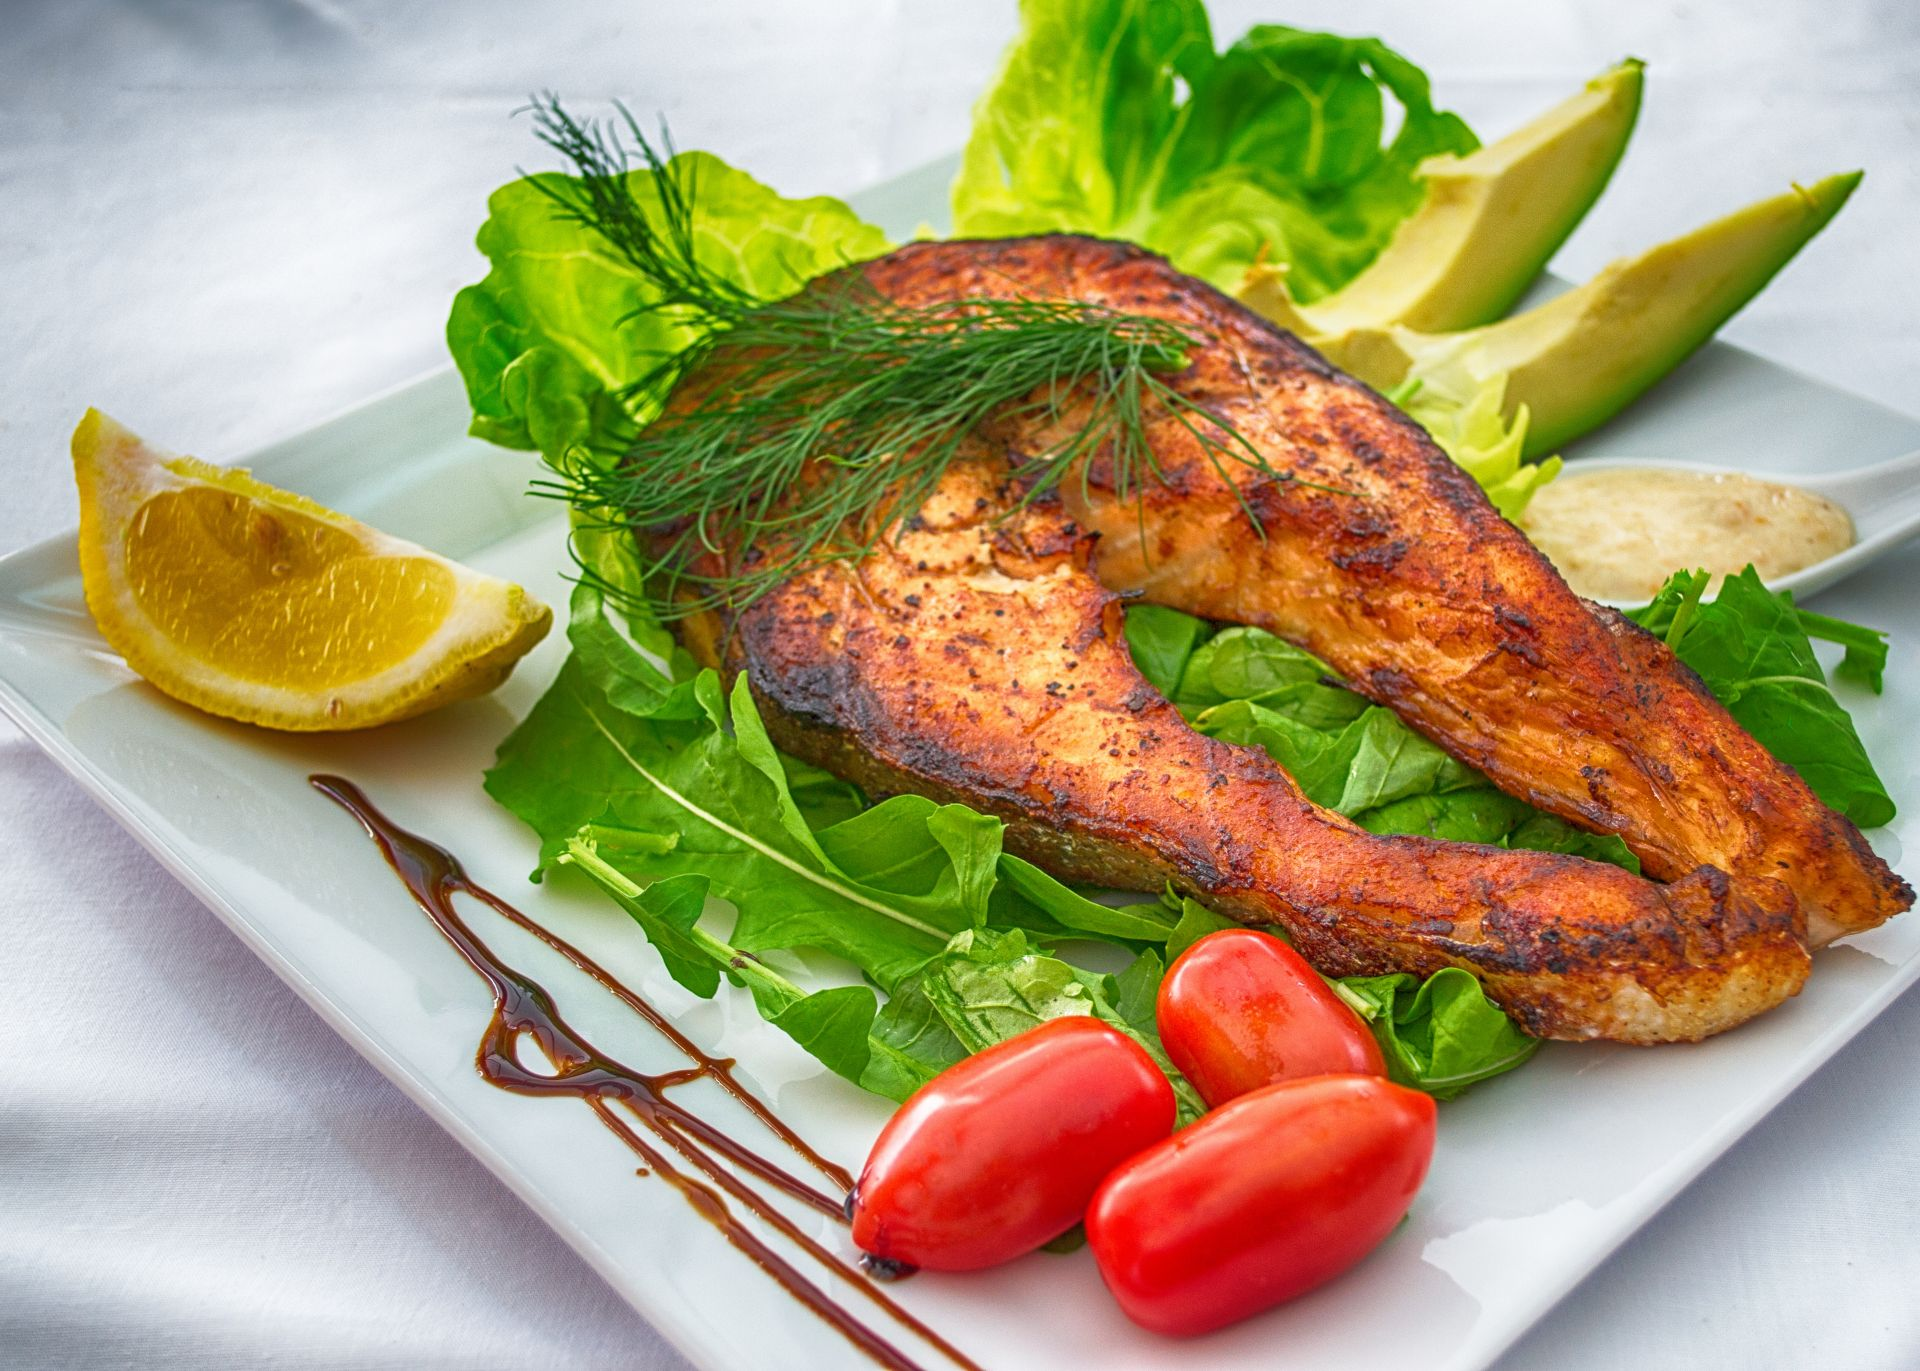 Fish and Chips Kogarah. Priced to sell. Low rent. Serving quality range of fresh and cooked Seafood, delicious grilled fish, burgers and salads. Busy shop situated south of Sydney.